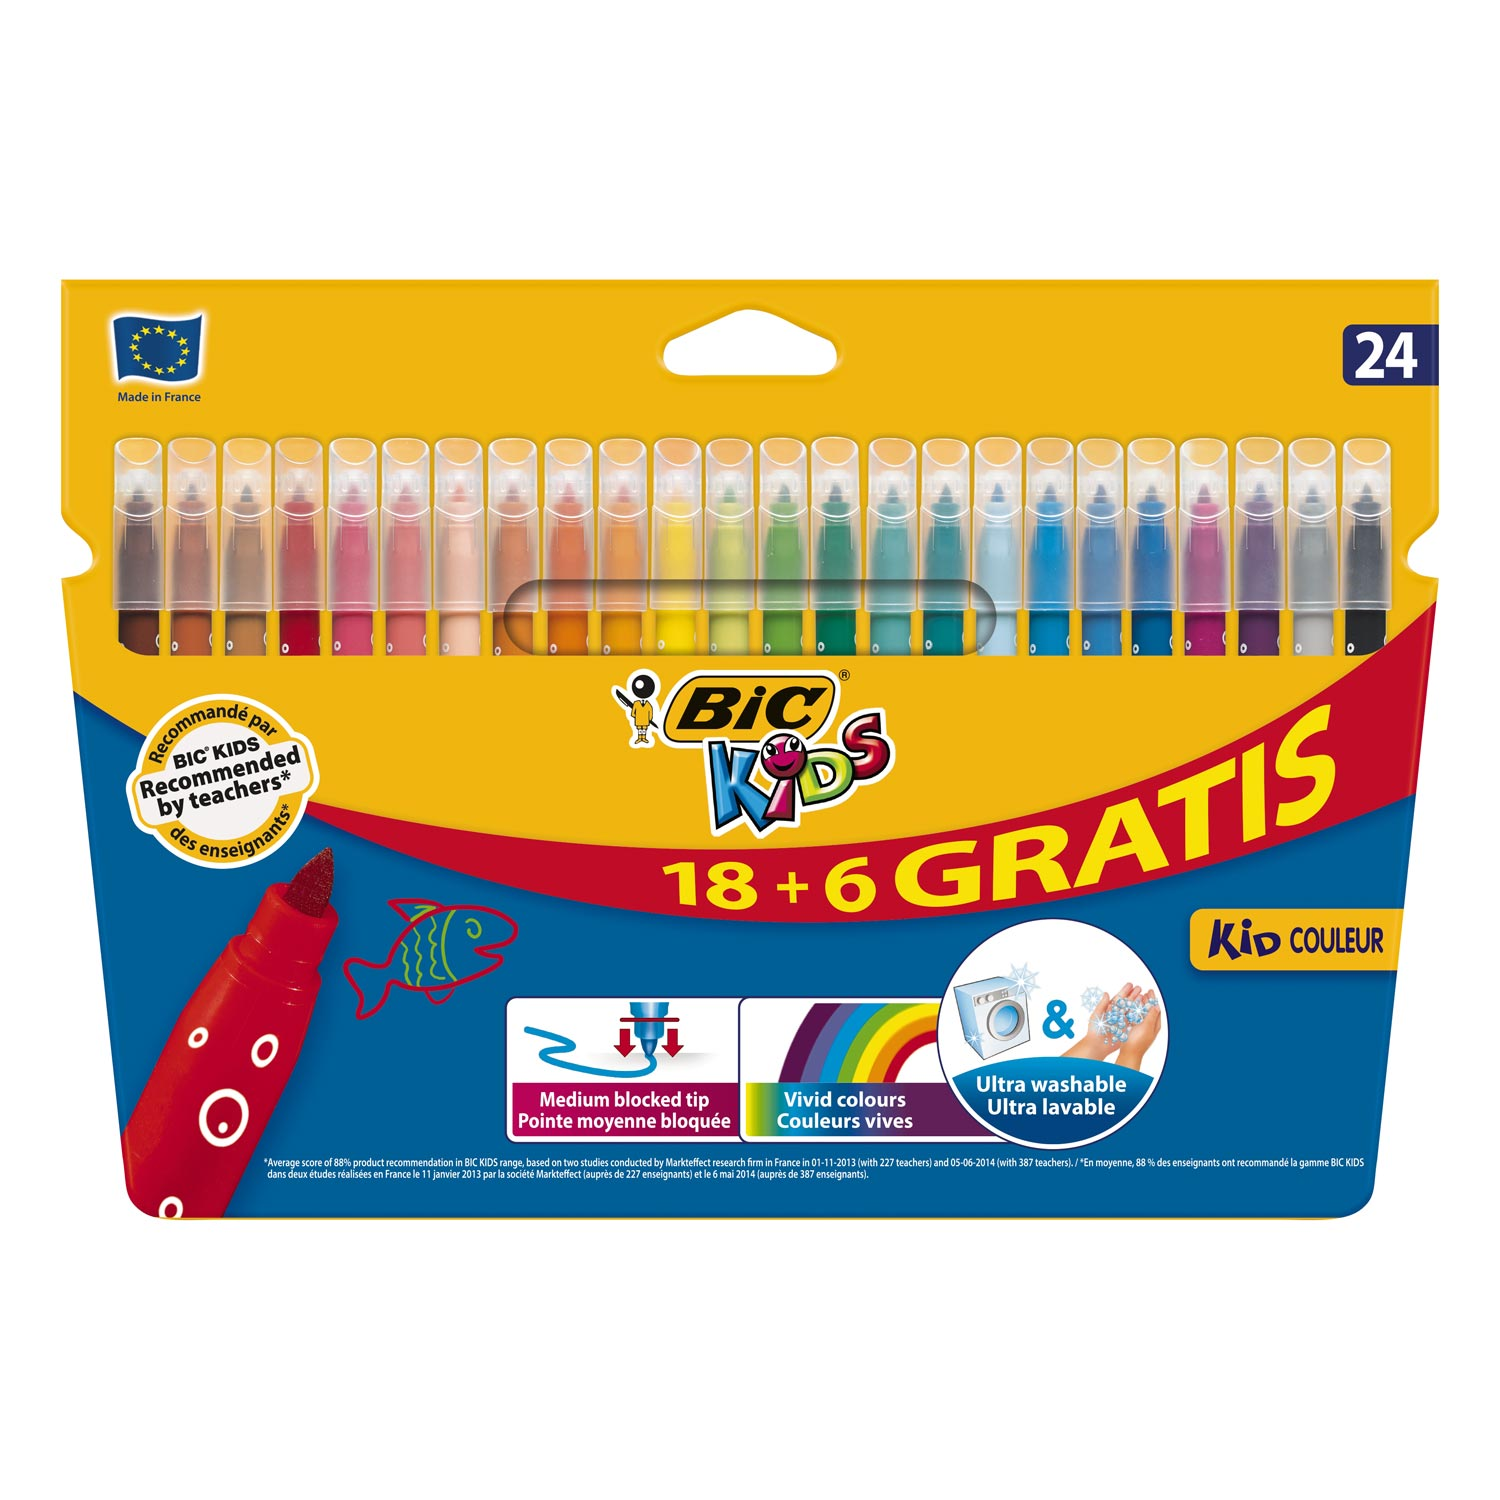 BIC Kids Kid Couleur, 18 + 6st gratis